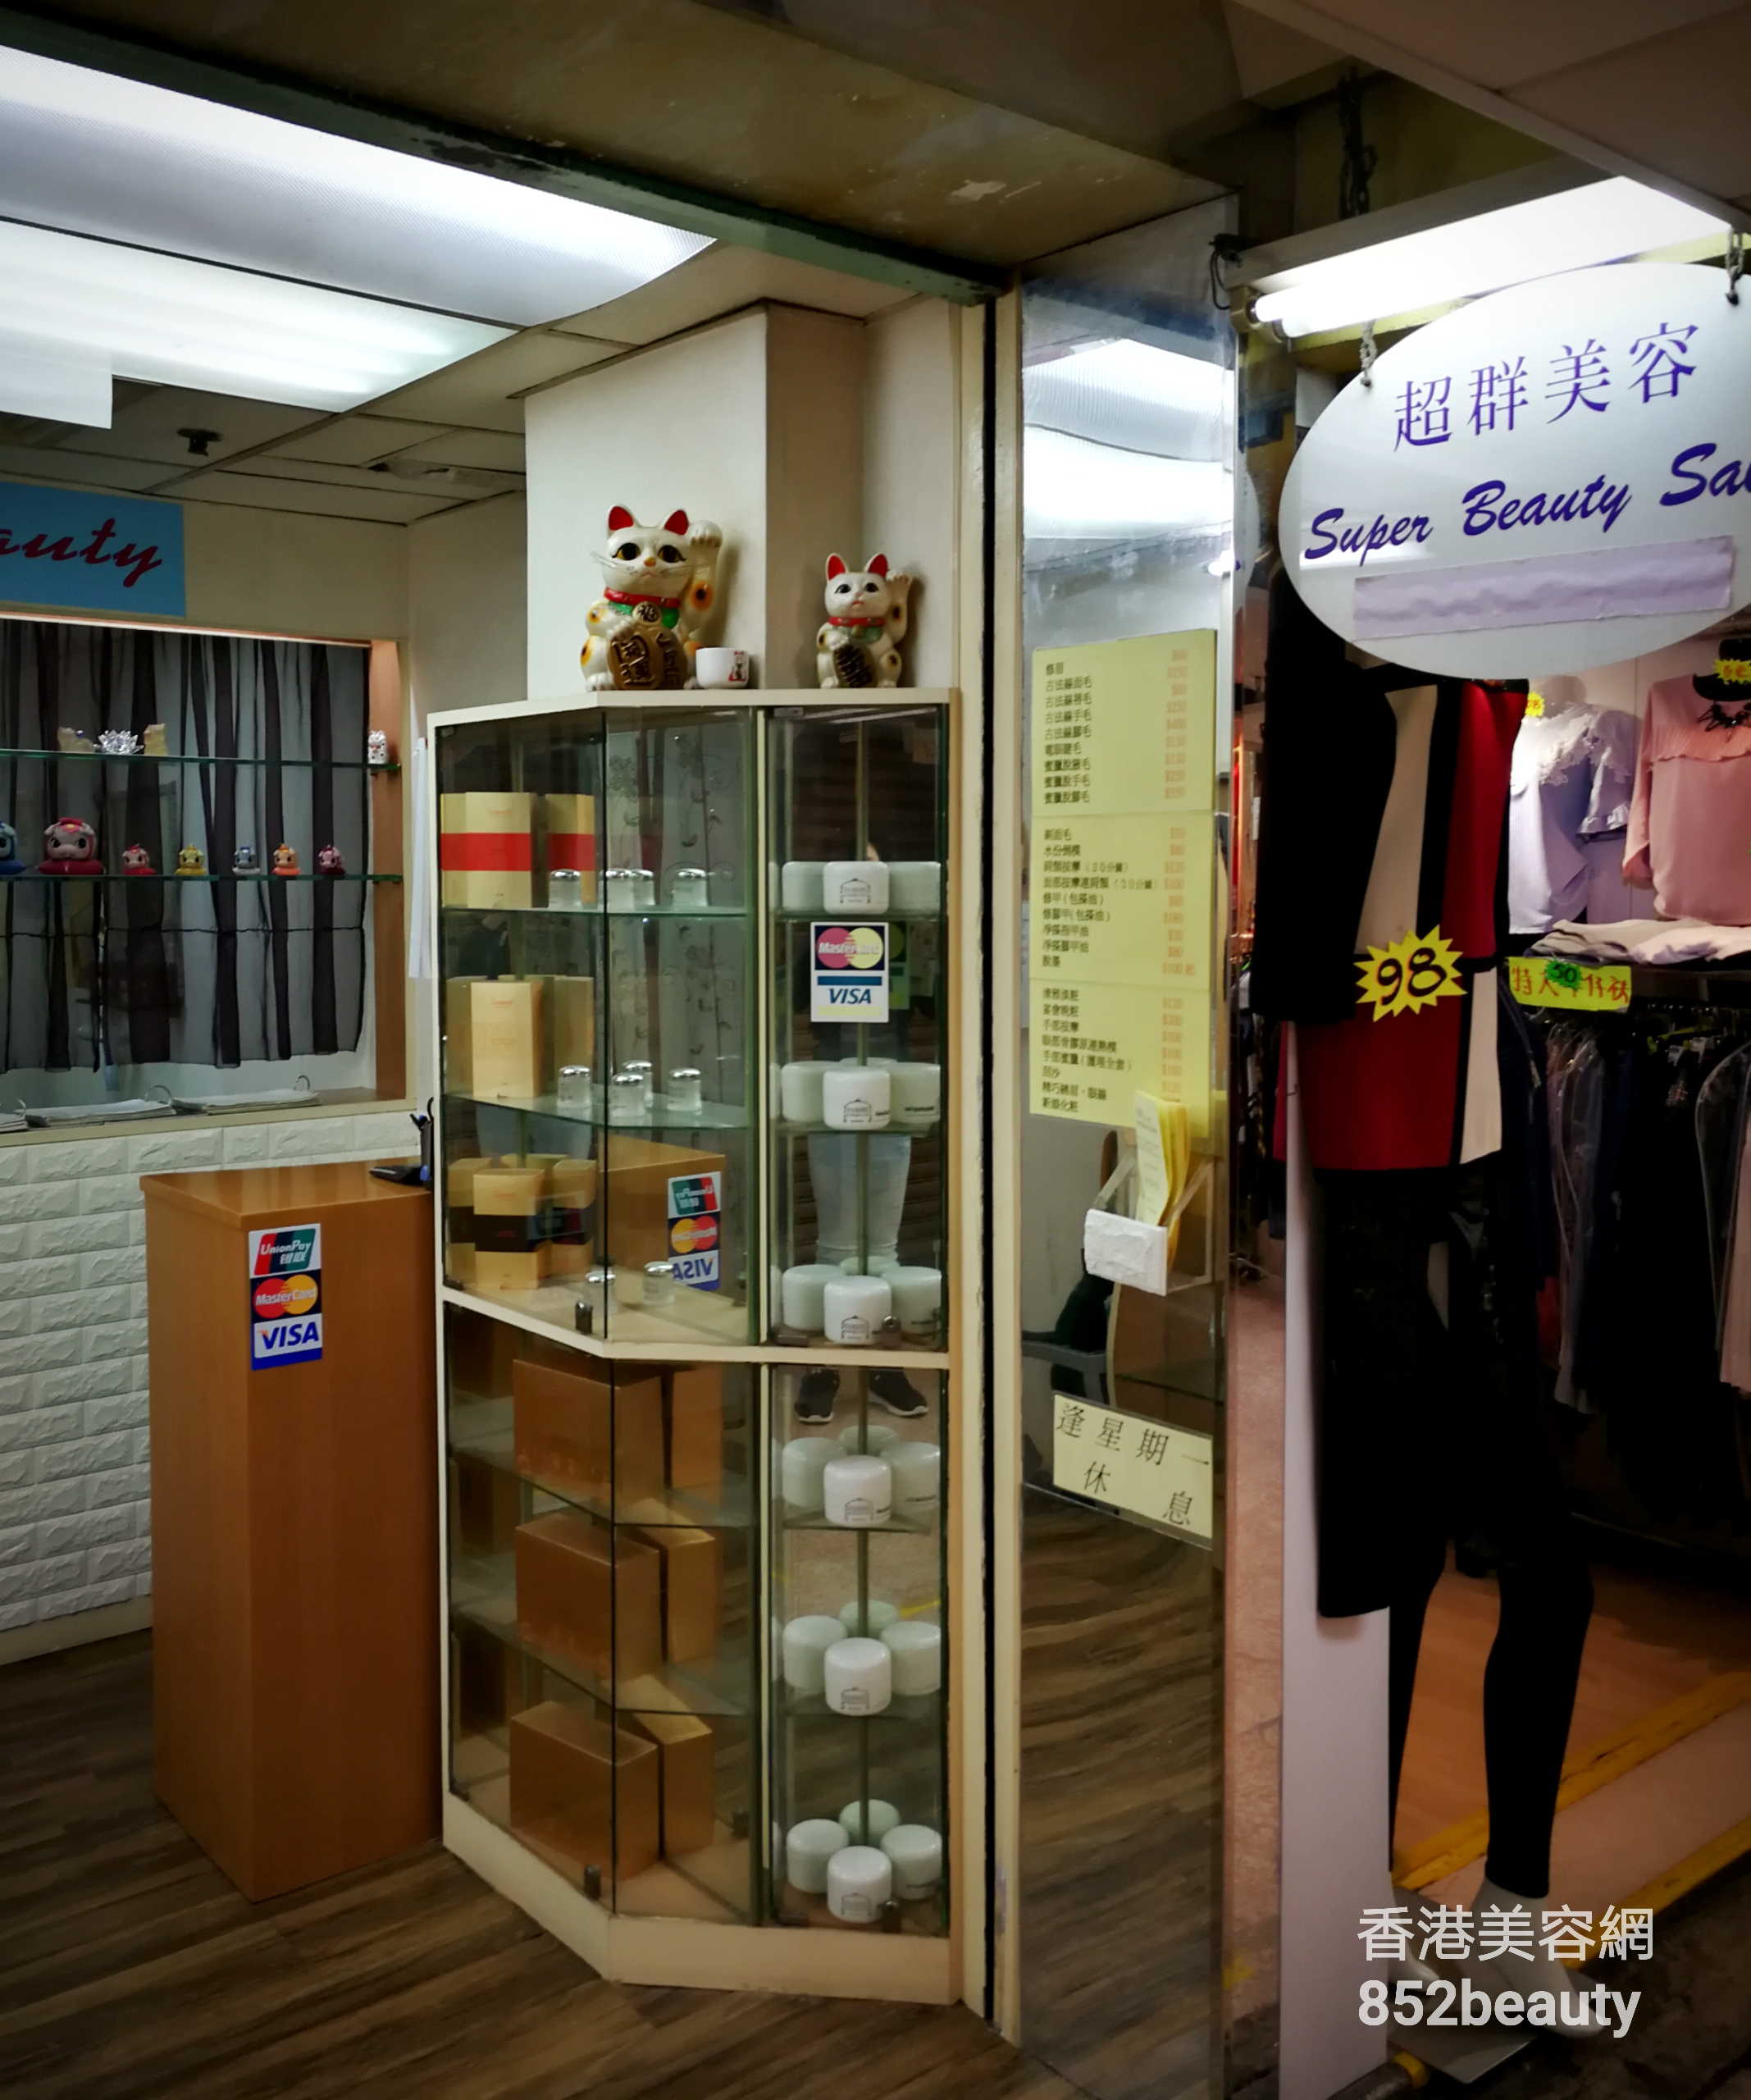 推介 Beauty Salon, 美容院, 美容師 超群美容